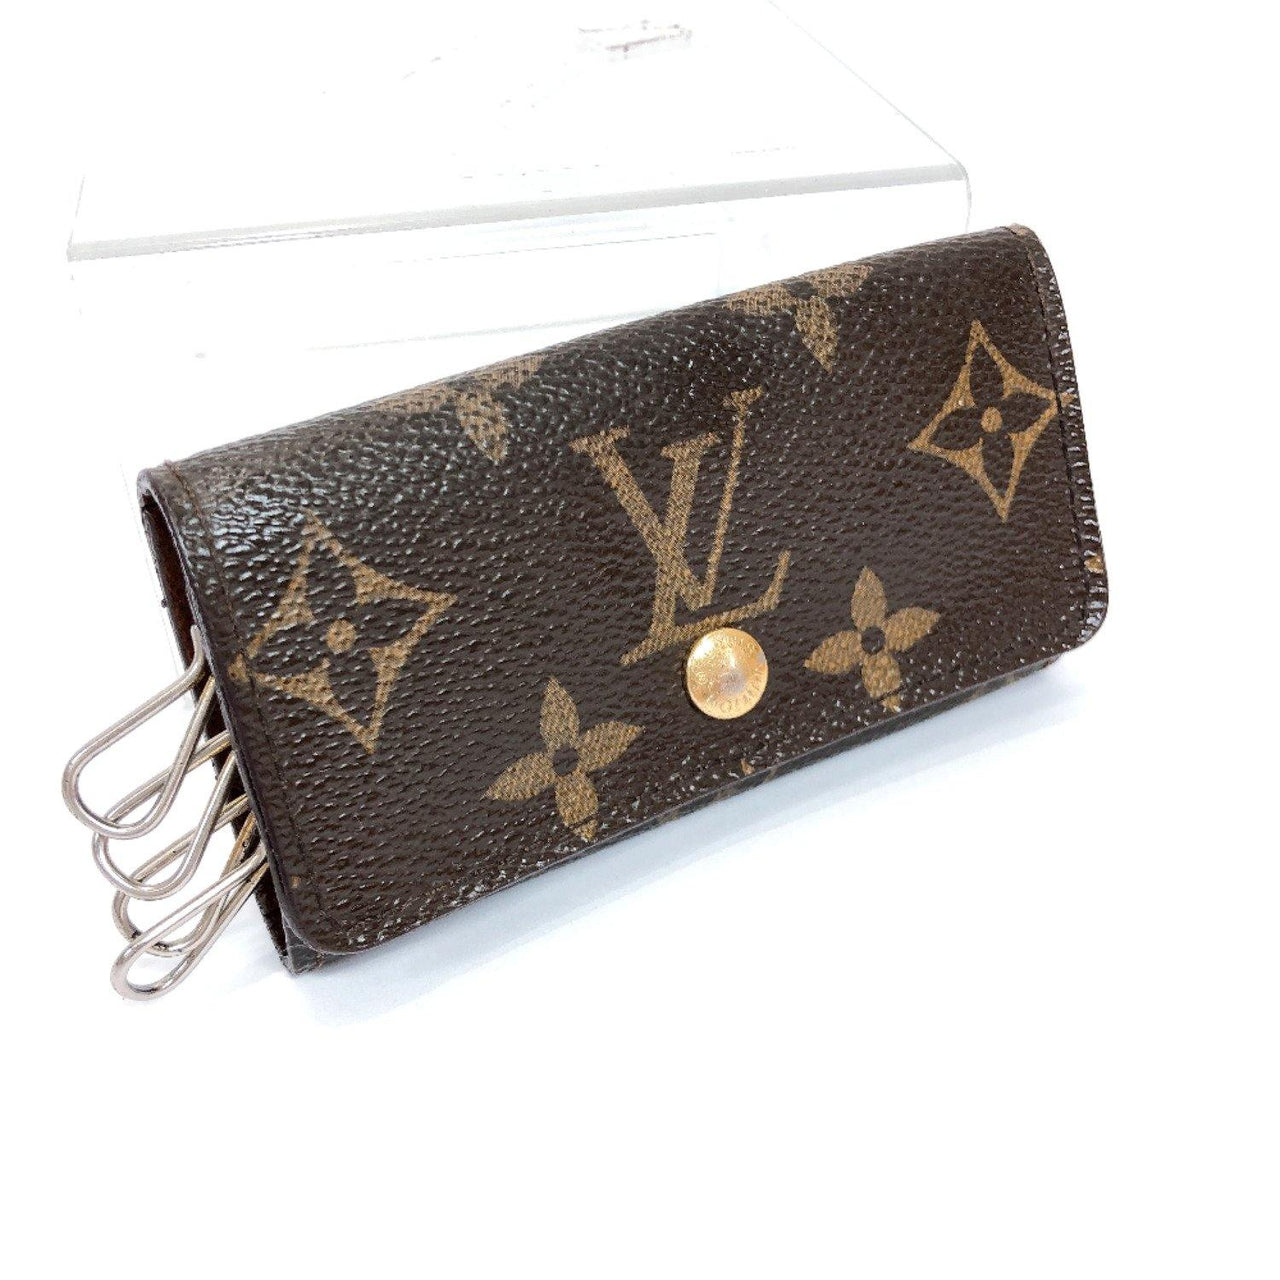 LOUIS VUITTON key holder M62631 Multicles4 4 hooks Monogram canvas Brown unisex Used